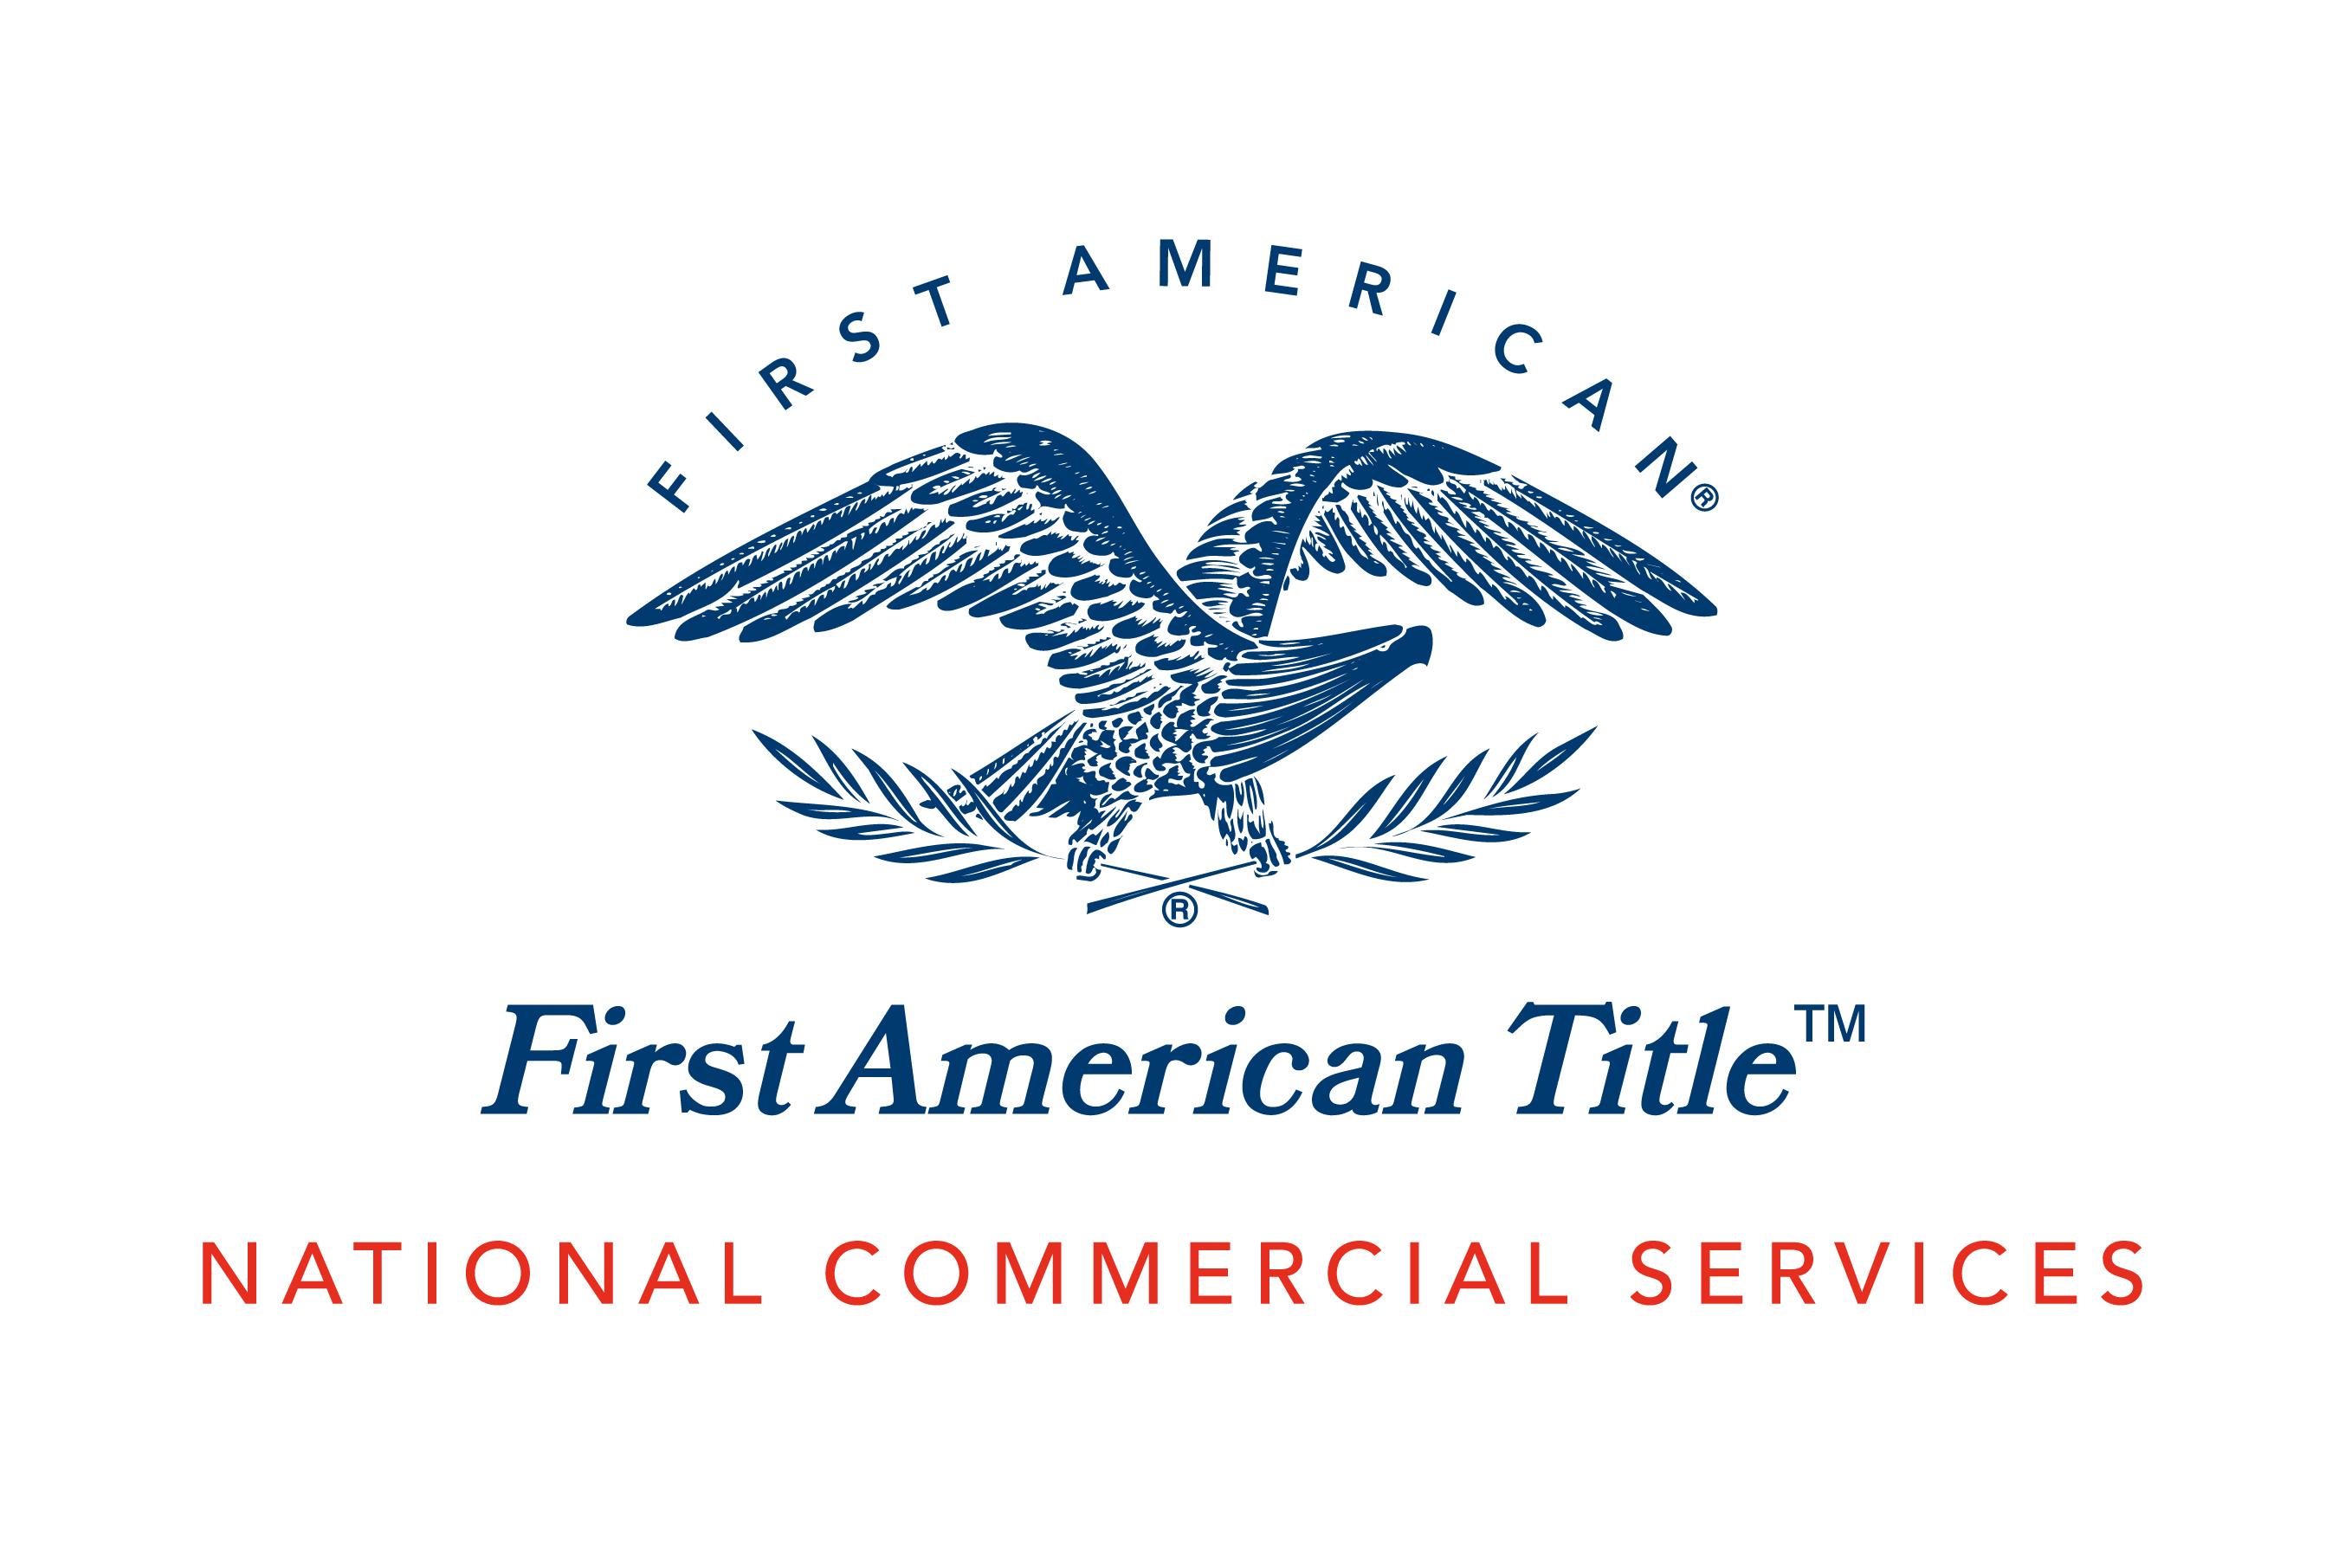 First American Title National Commercial Services